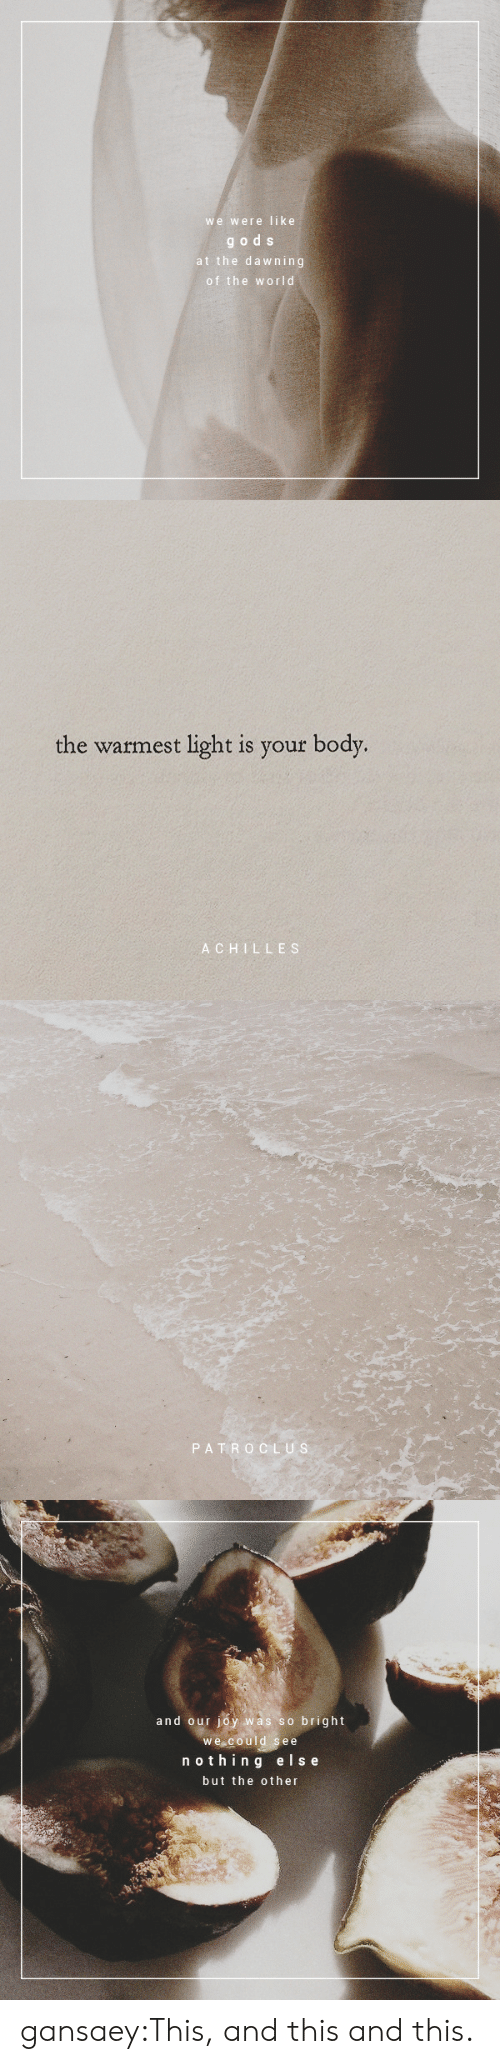 achilles: we were like  gods  at the dawning  of the world   the warmest light is your body.  ACHILLES   PATRO CLUS   and our joy was so bright  we could see  nothin g else  but the other gansaey:This, and this and this.